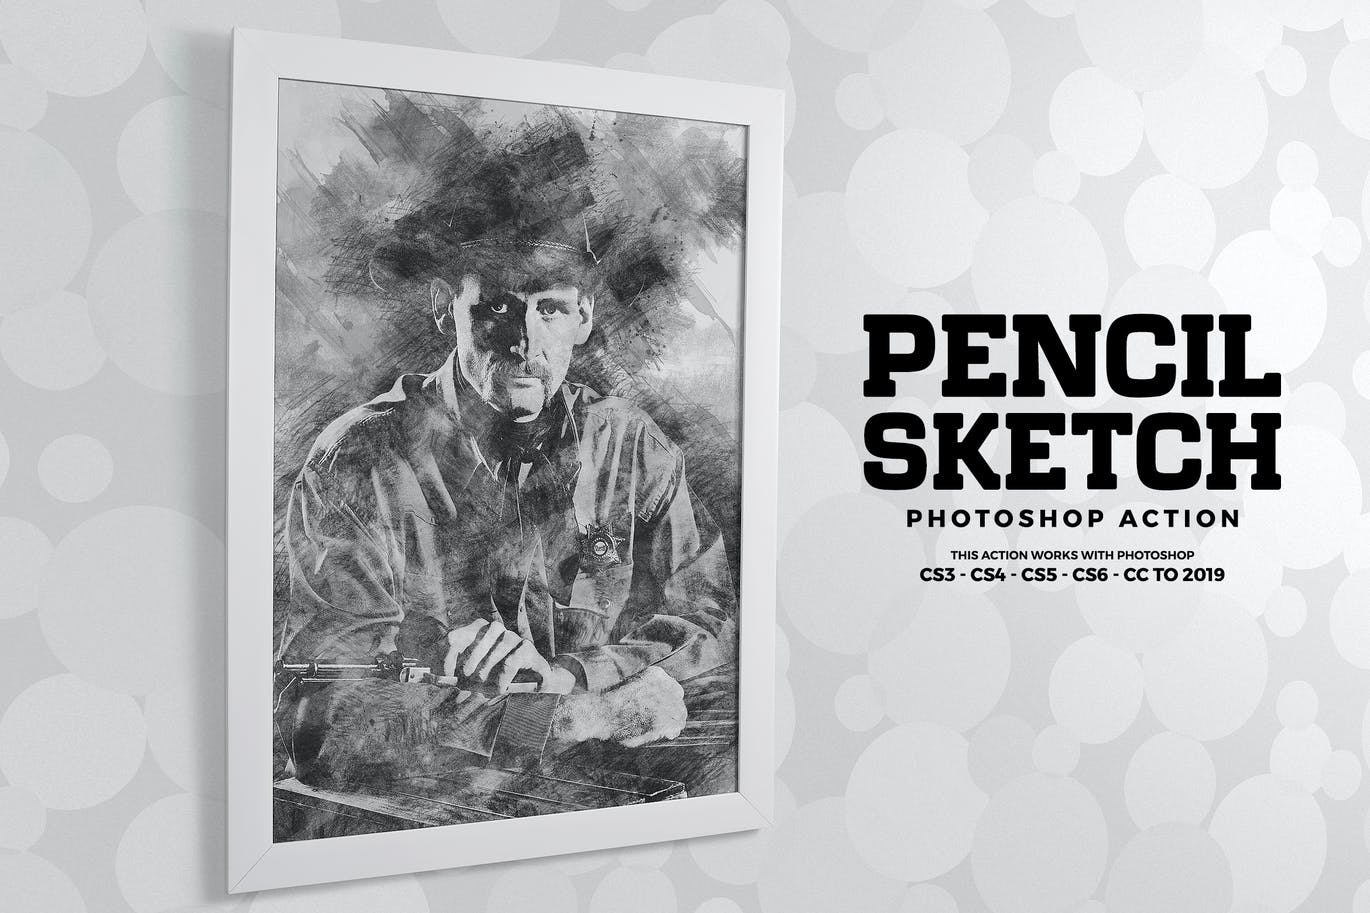 Pencil sketch photoshop action by eugene design on envato elements